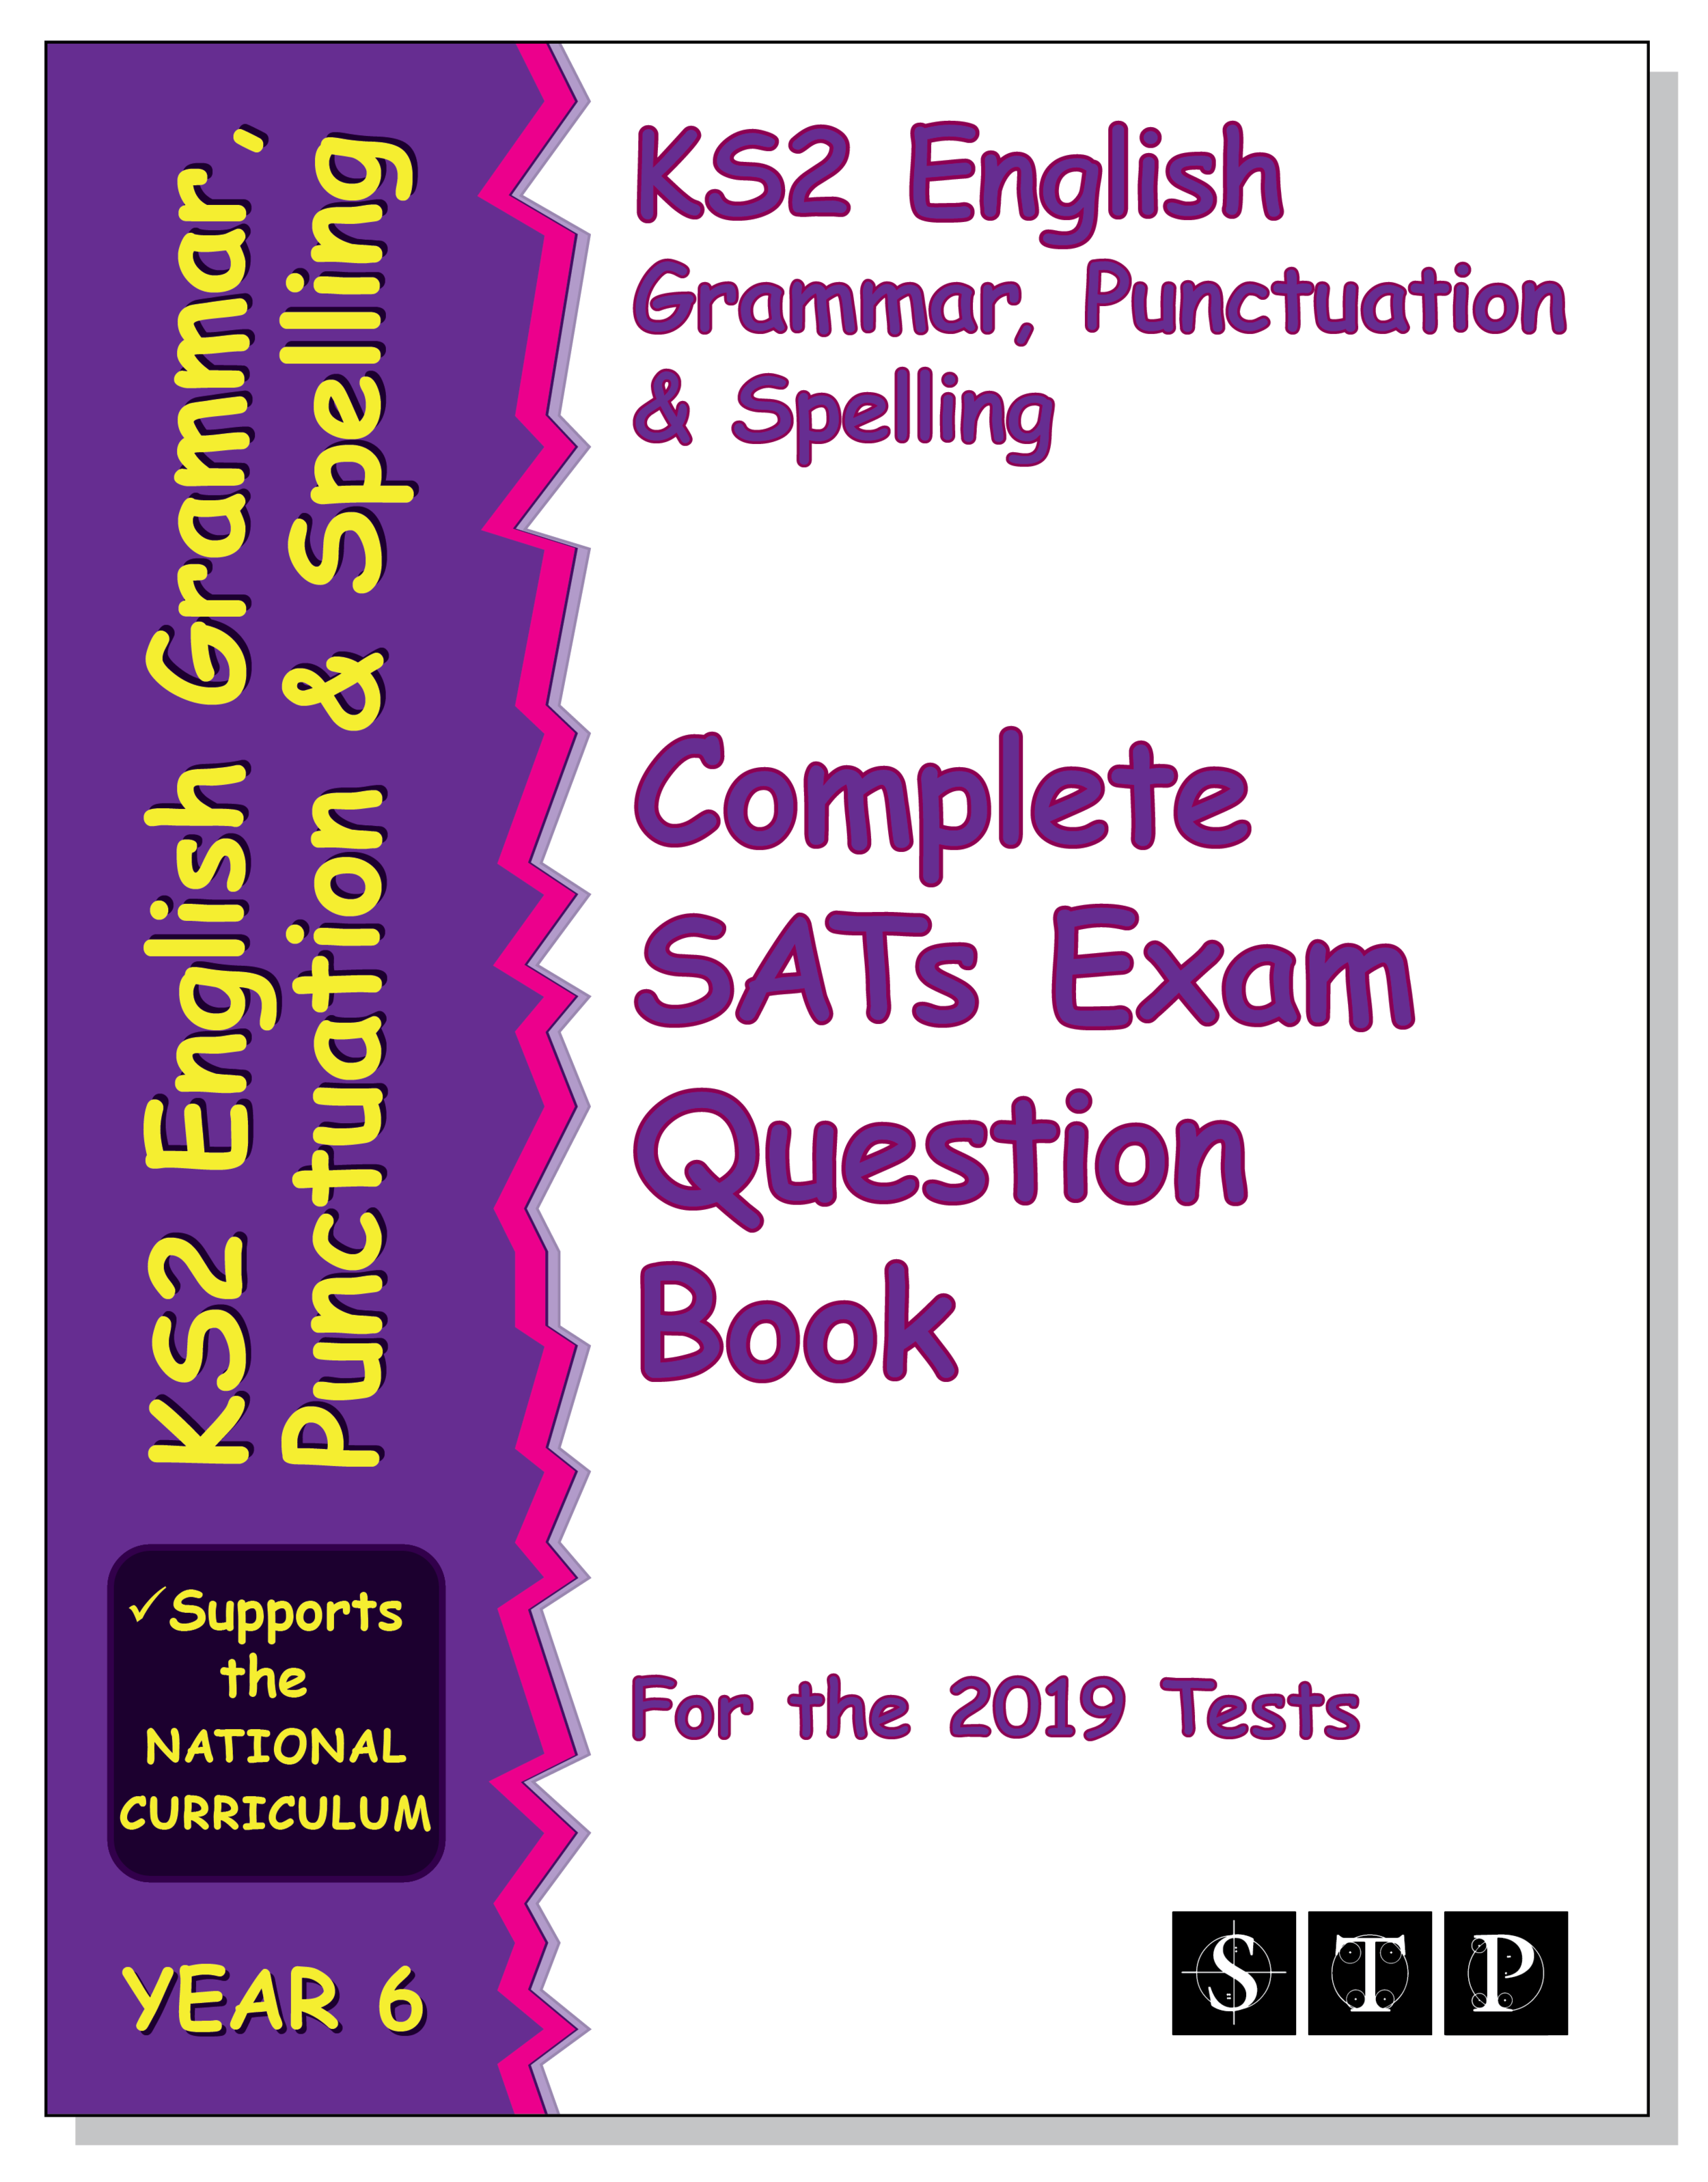 STP Books KS2 English Grammar, Punctuation and Spelling Complete SATs Exam Question Book for the 2019 Tests (Year 6) (STP KS2 English Revision)